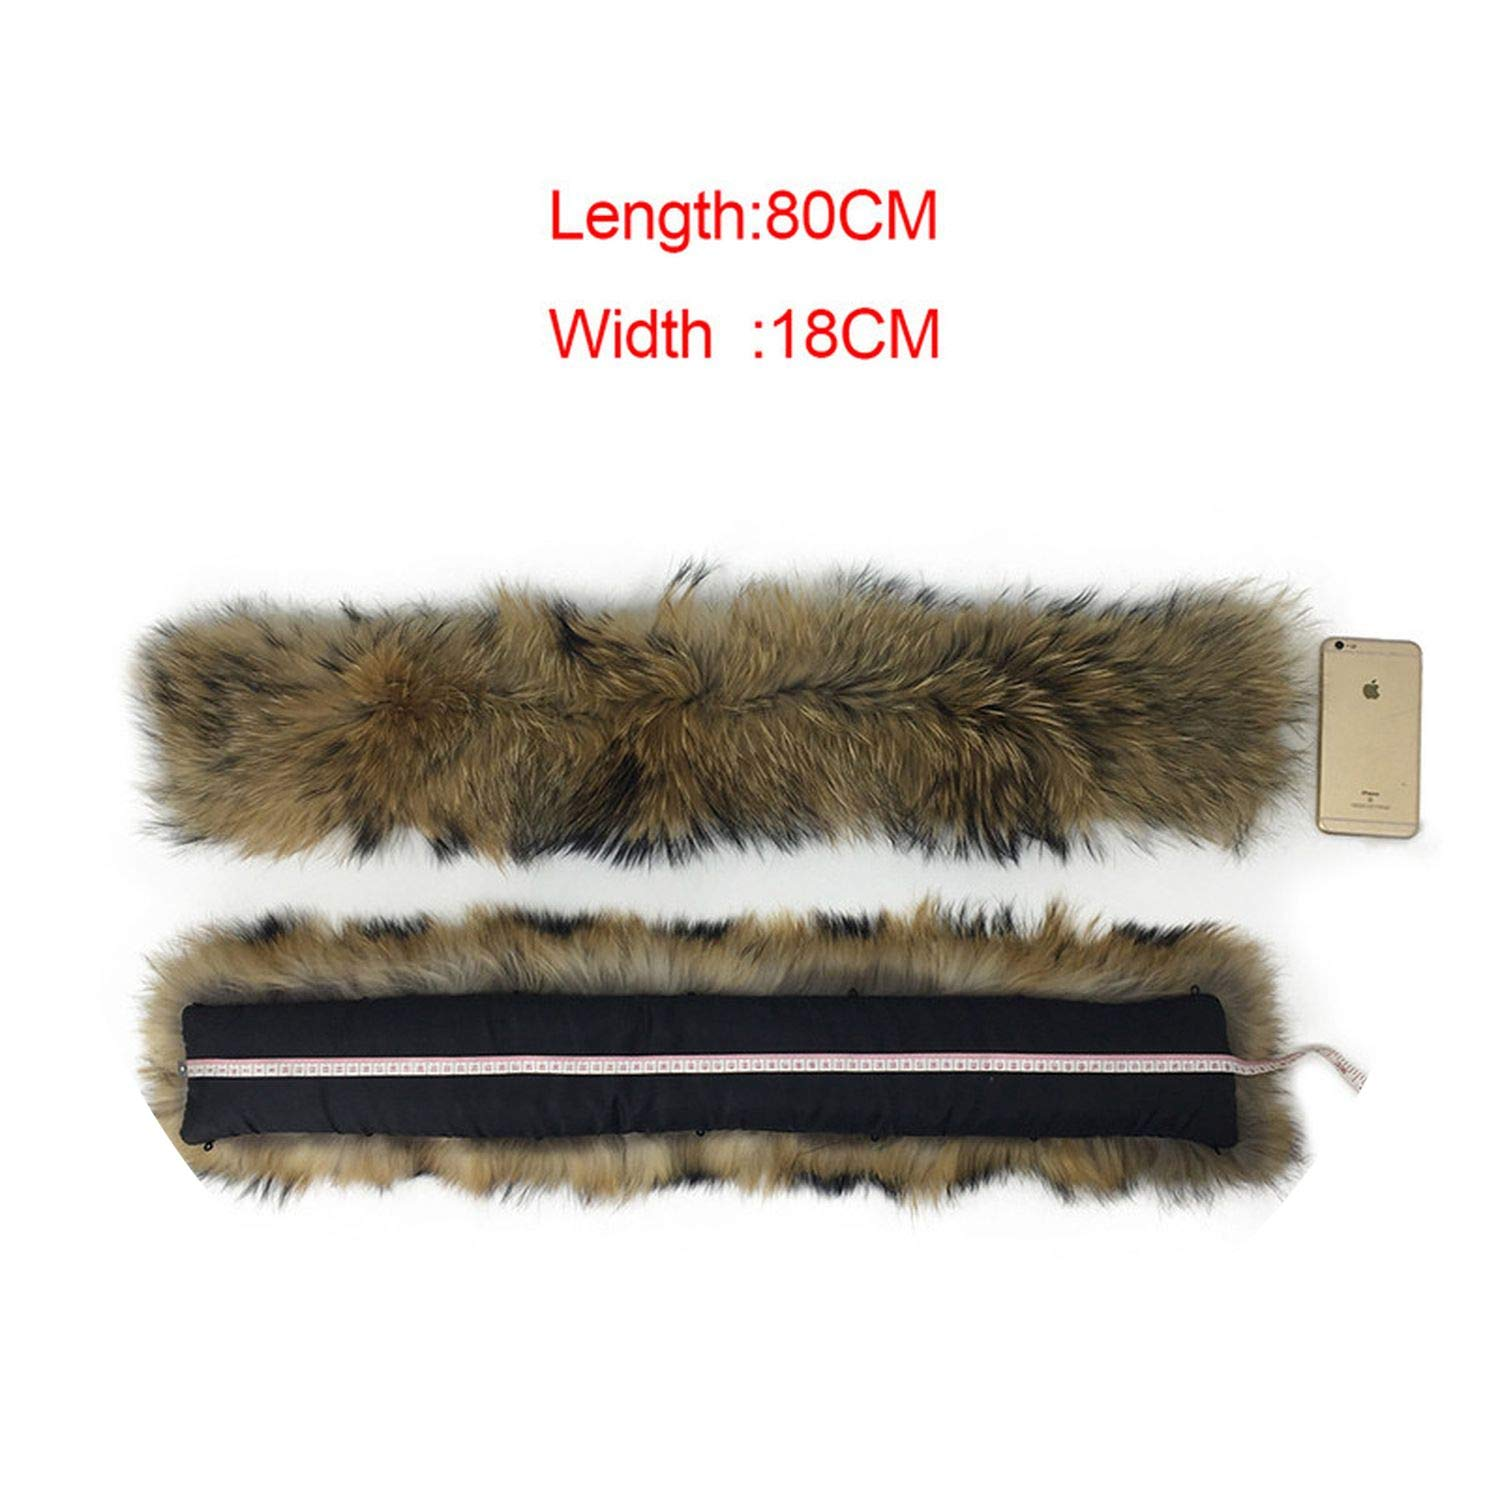 80CM X 18CM 65cm 75cm 80cm 85cn 90cm 100% Natural Real Raccoon Collar Women Scarf Winter Coat Neck Cap Long Warm Genuine Real Sarf,70CM X 18CM